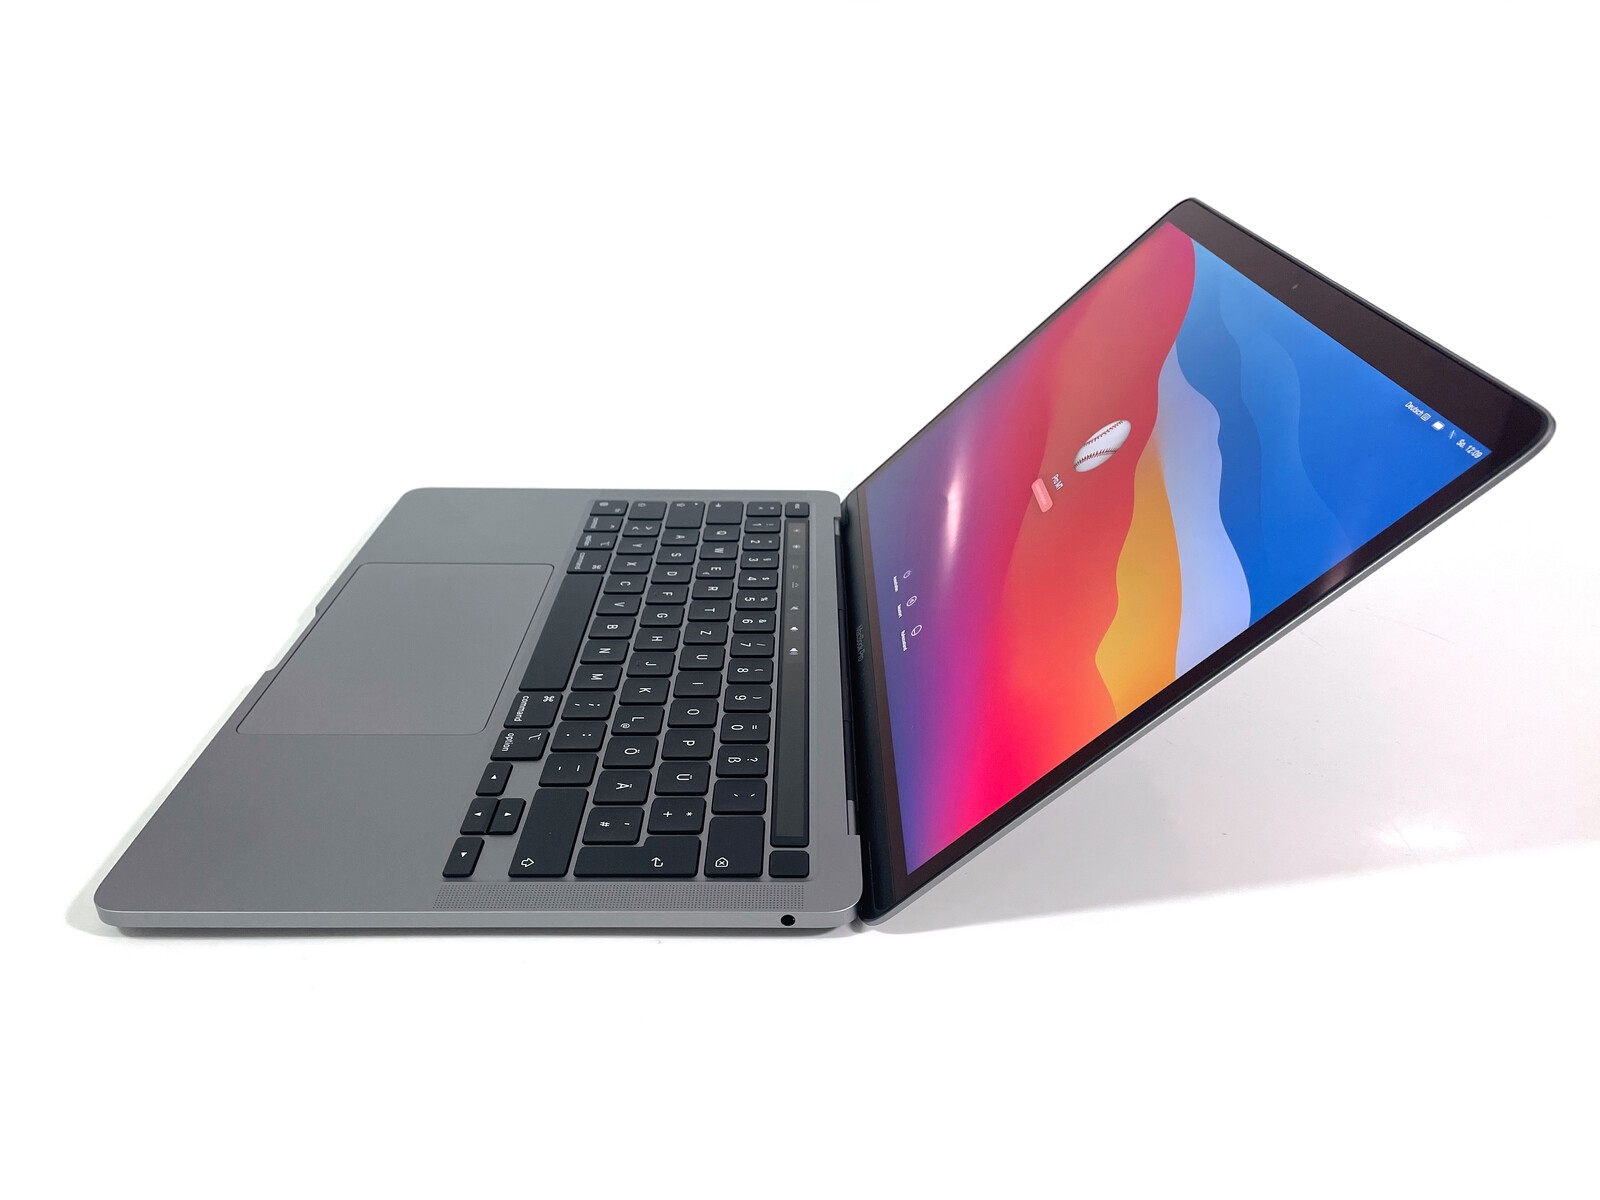 The new Apple MacBook Pro 13 M1 is very good, but where are the Pro features compared to the MacBook Air?